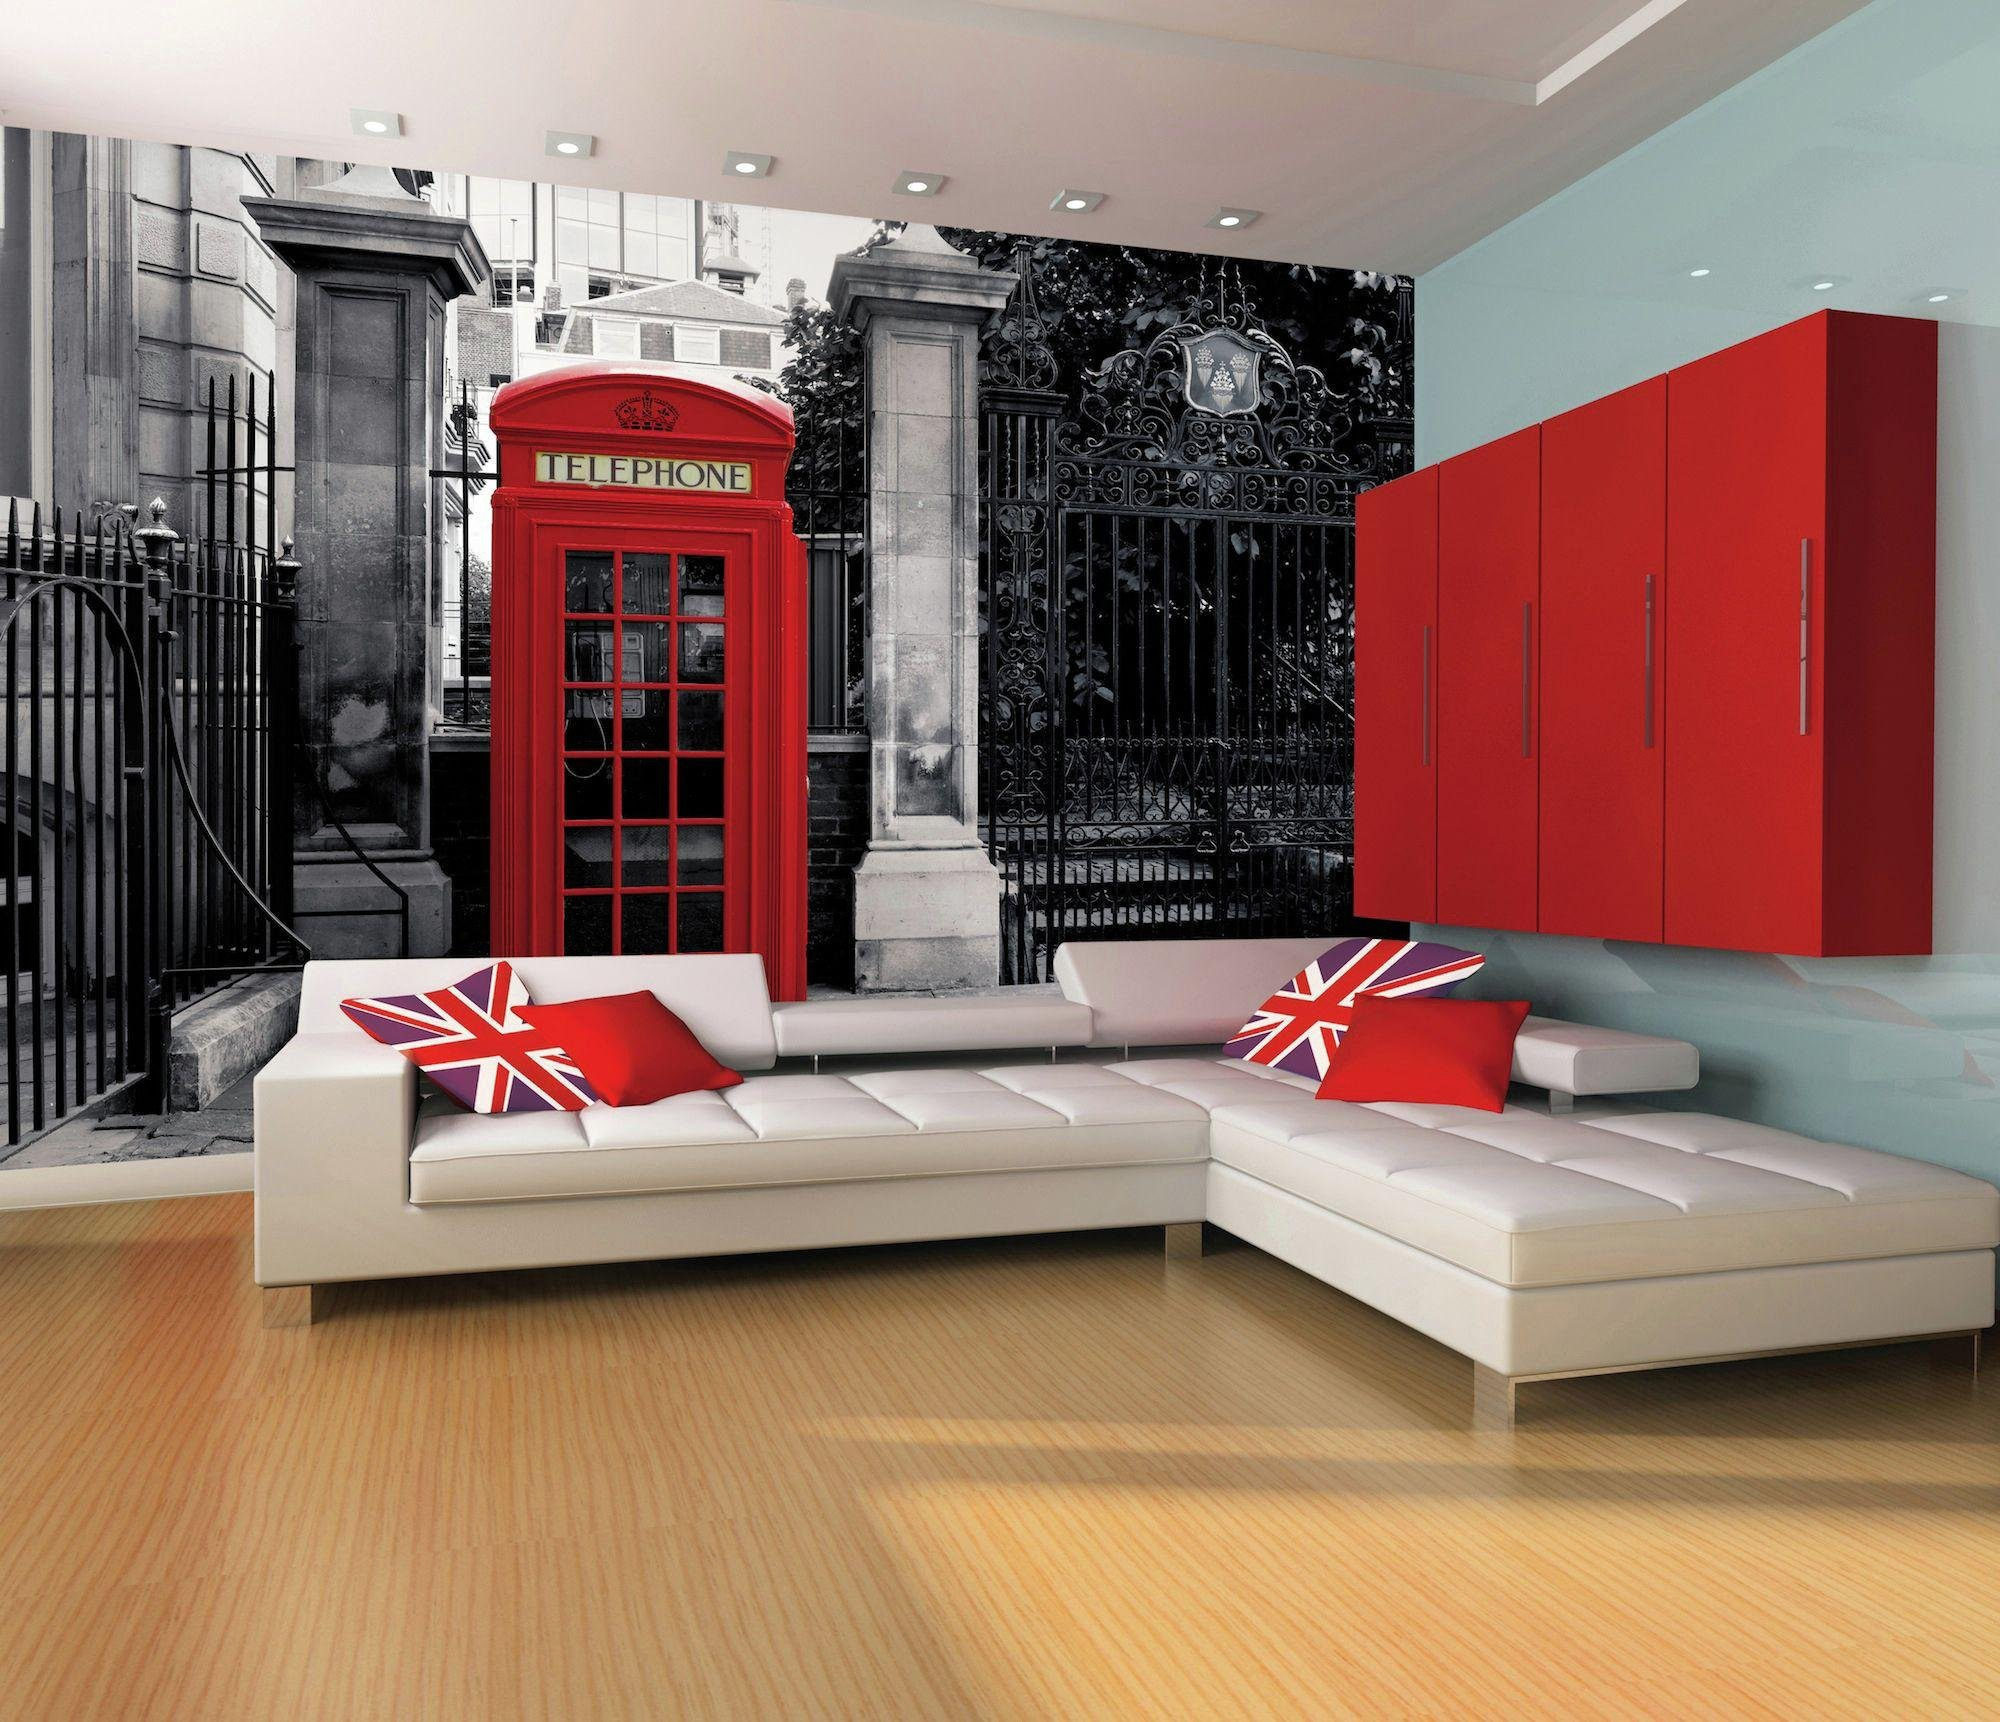 1Wall - London Telephone Box - Wallpaper Mural